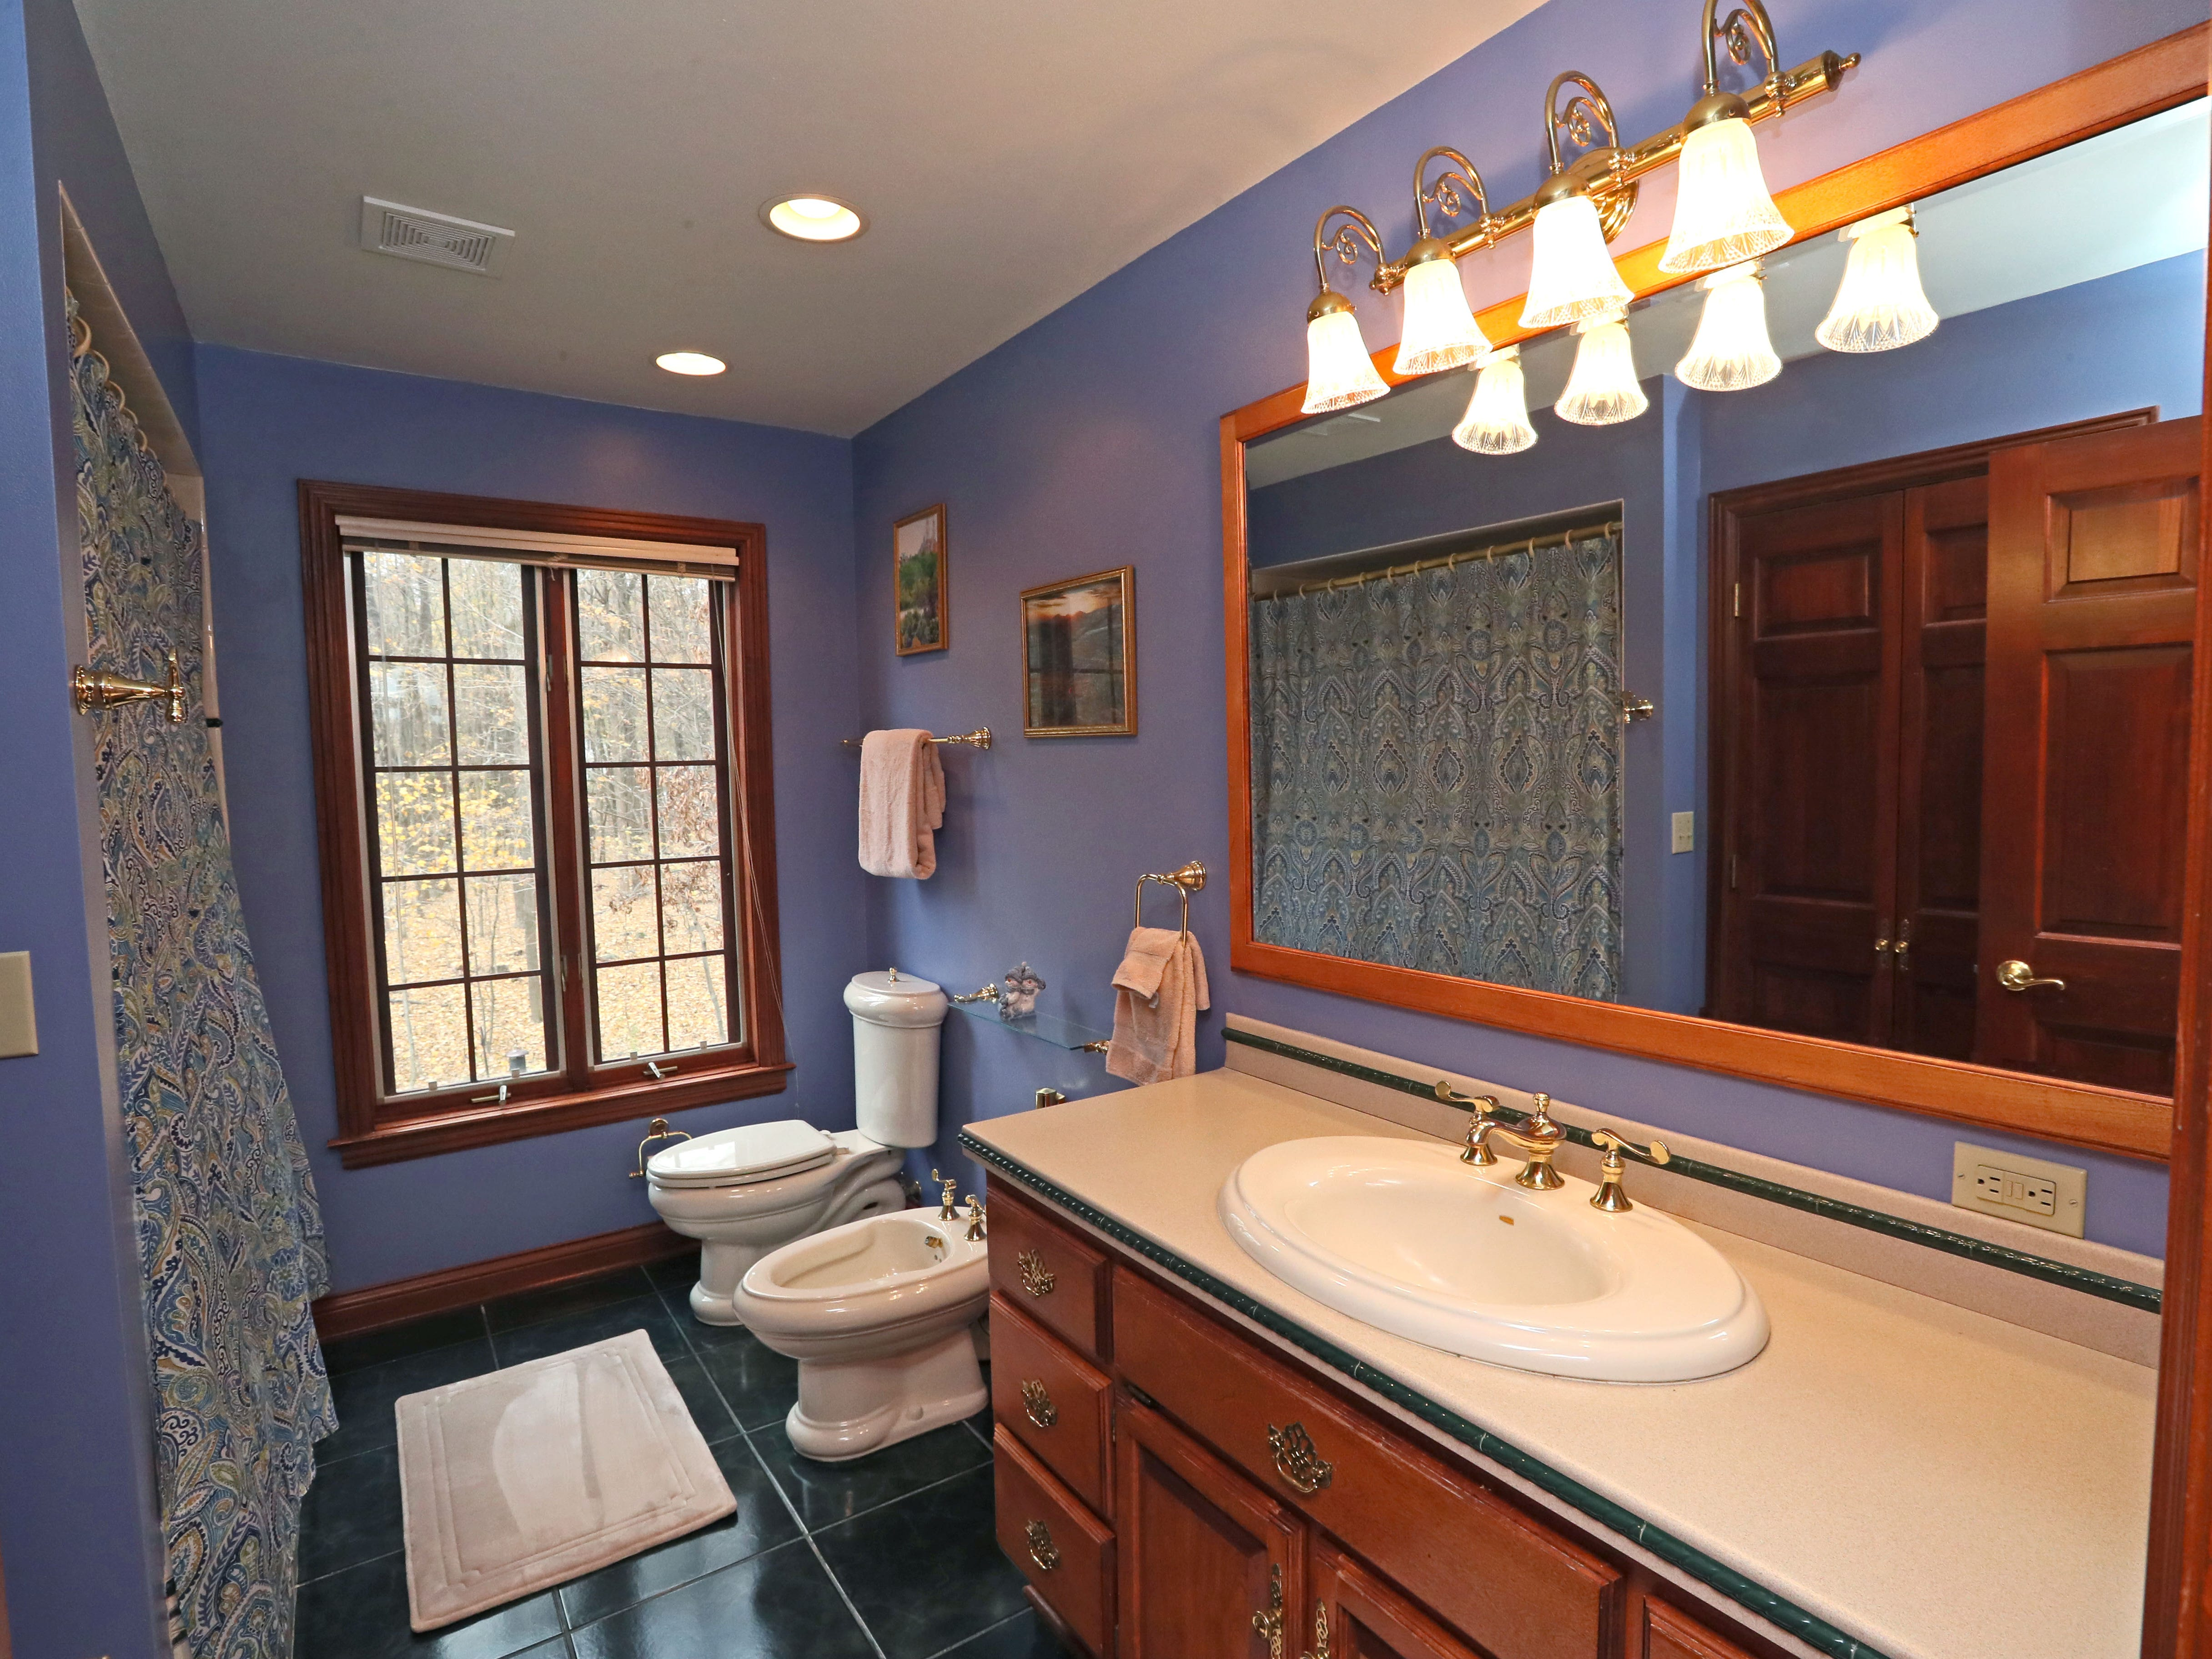 Some rooms, including the guest bathroom, have taken on fun colors recently.